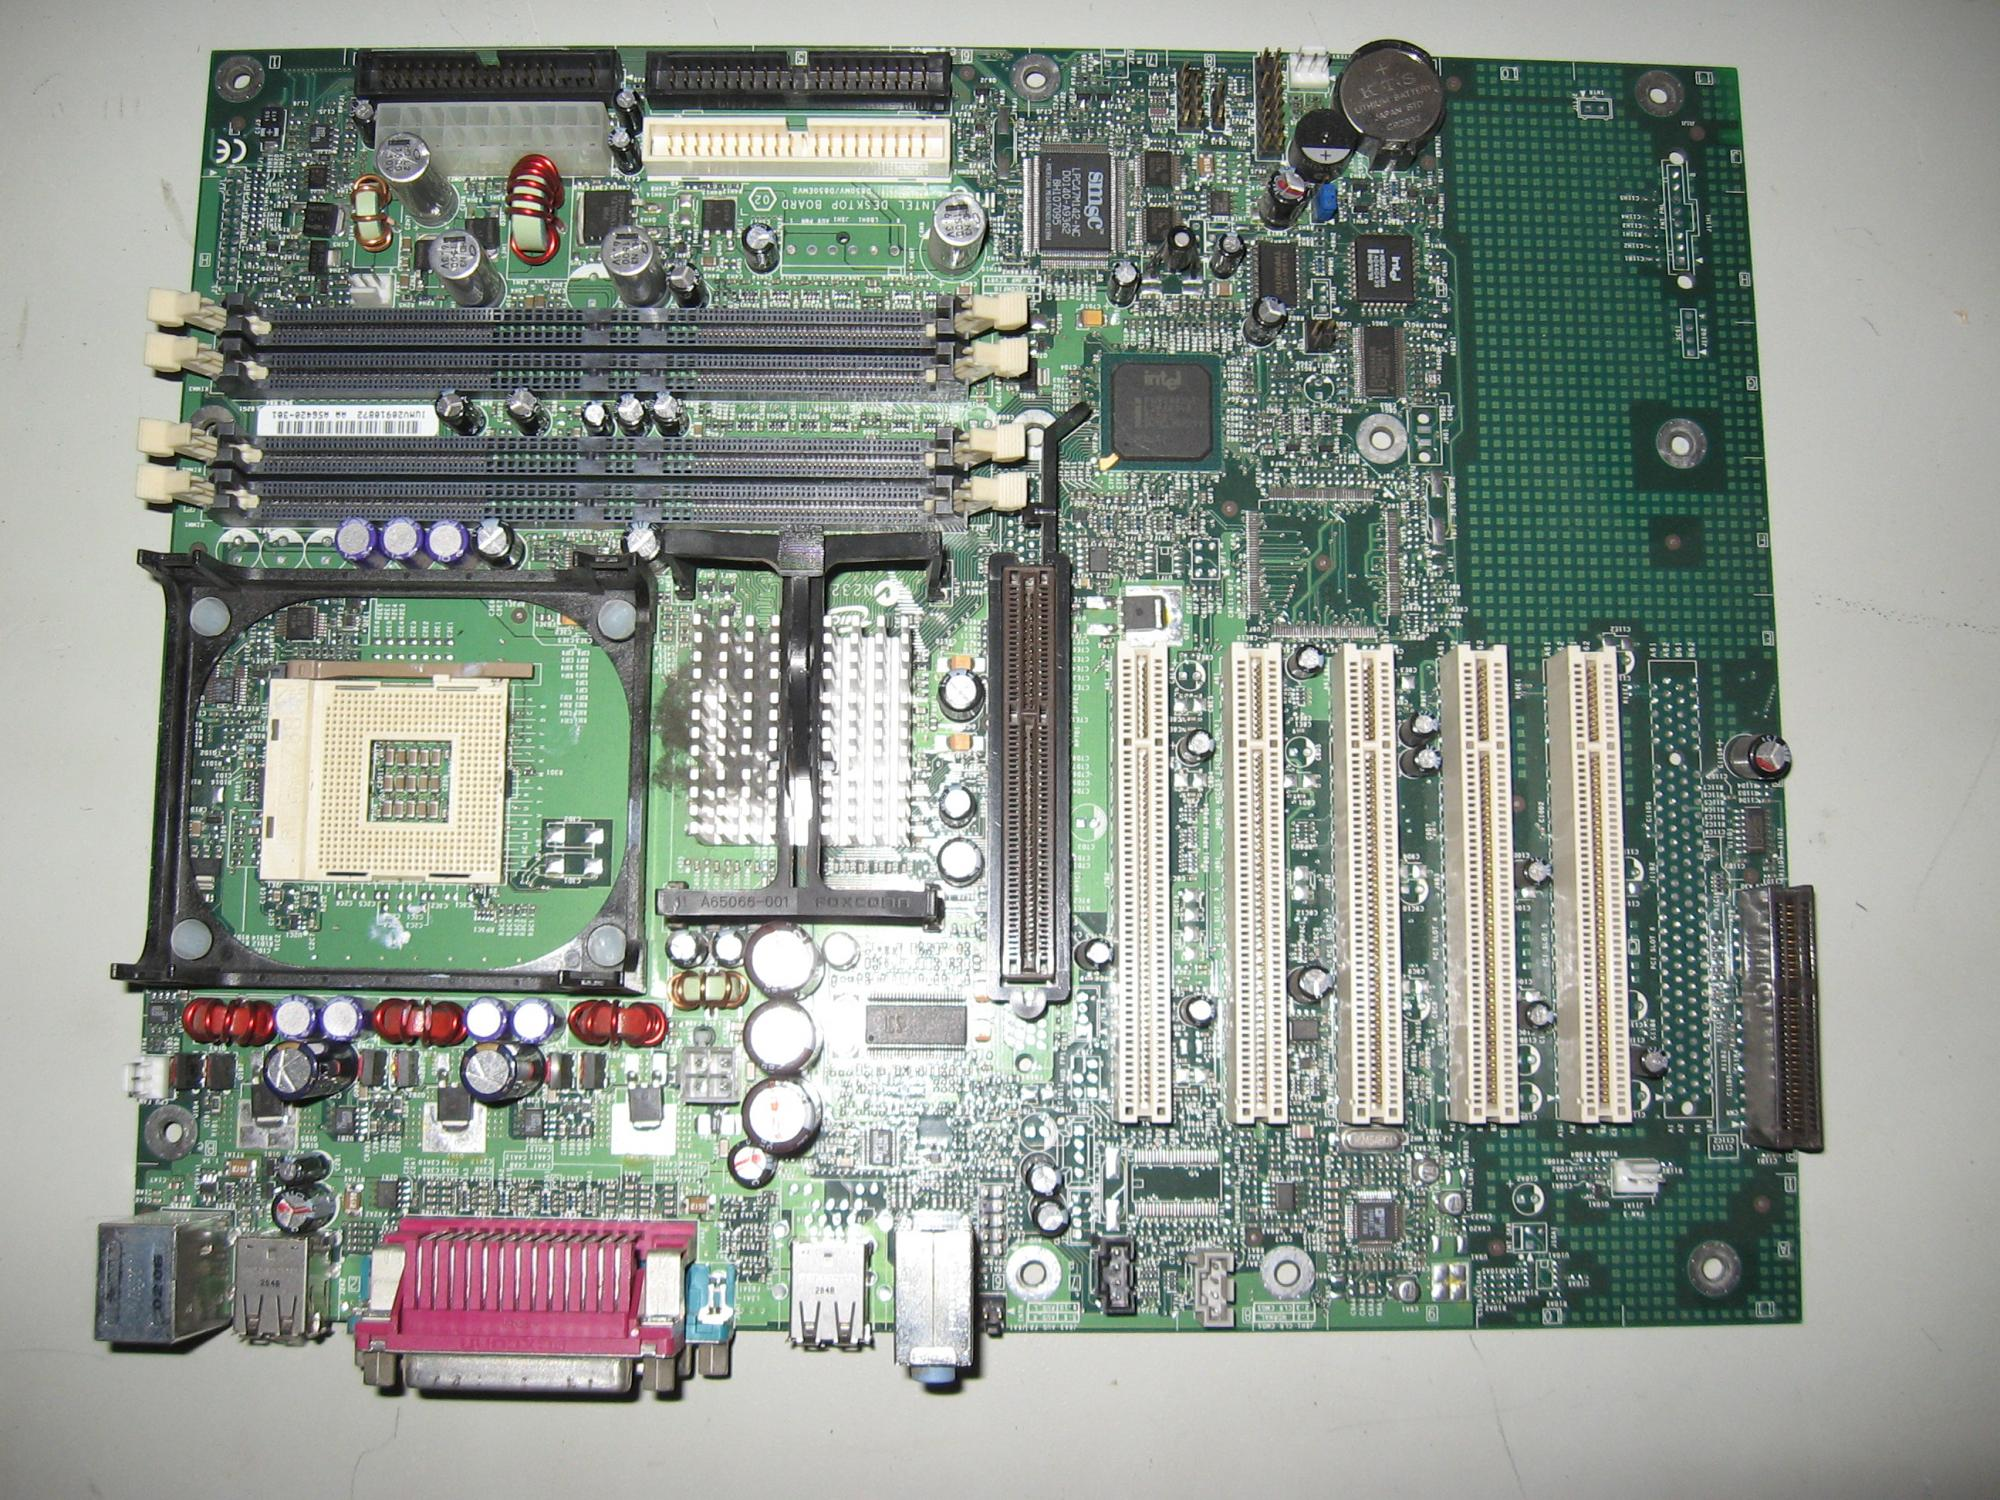 D850MV MOTHERBOARD WINDOWS 8 DRIVER DOWNLOAD